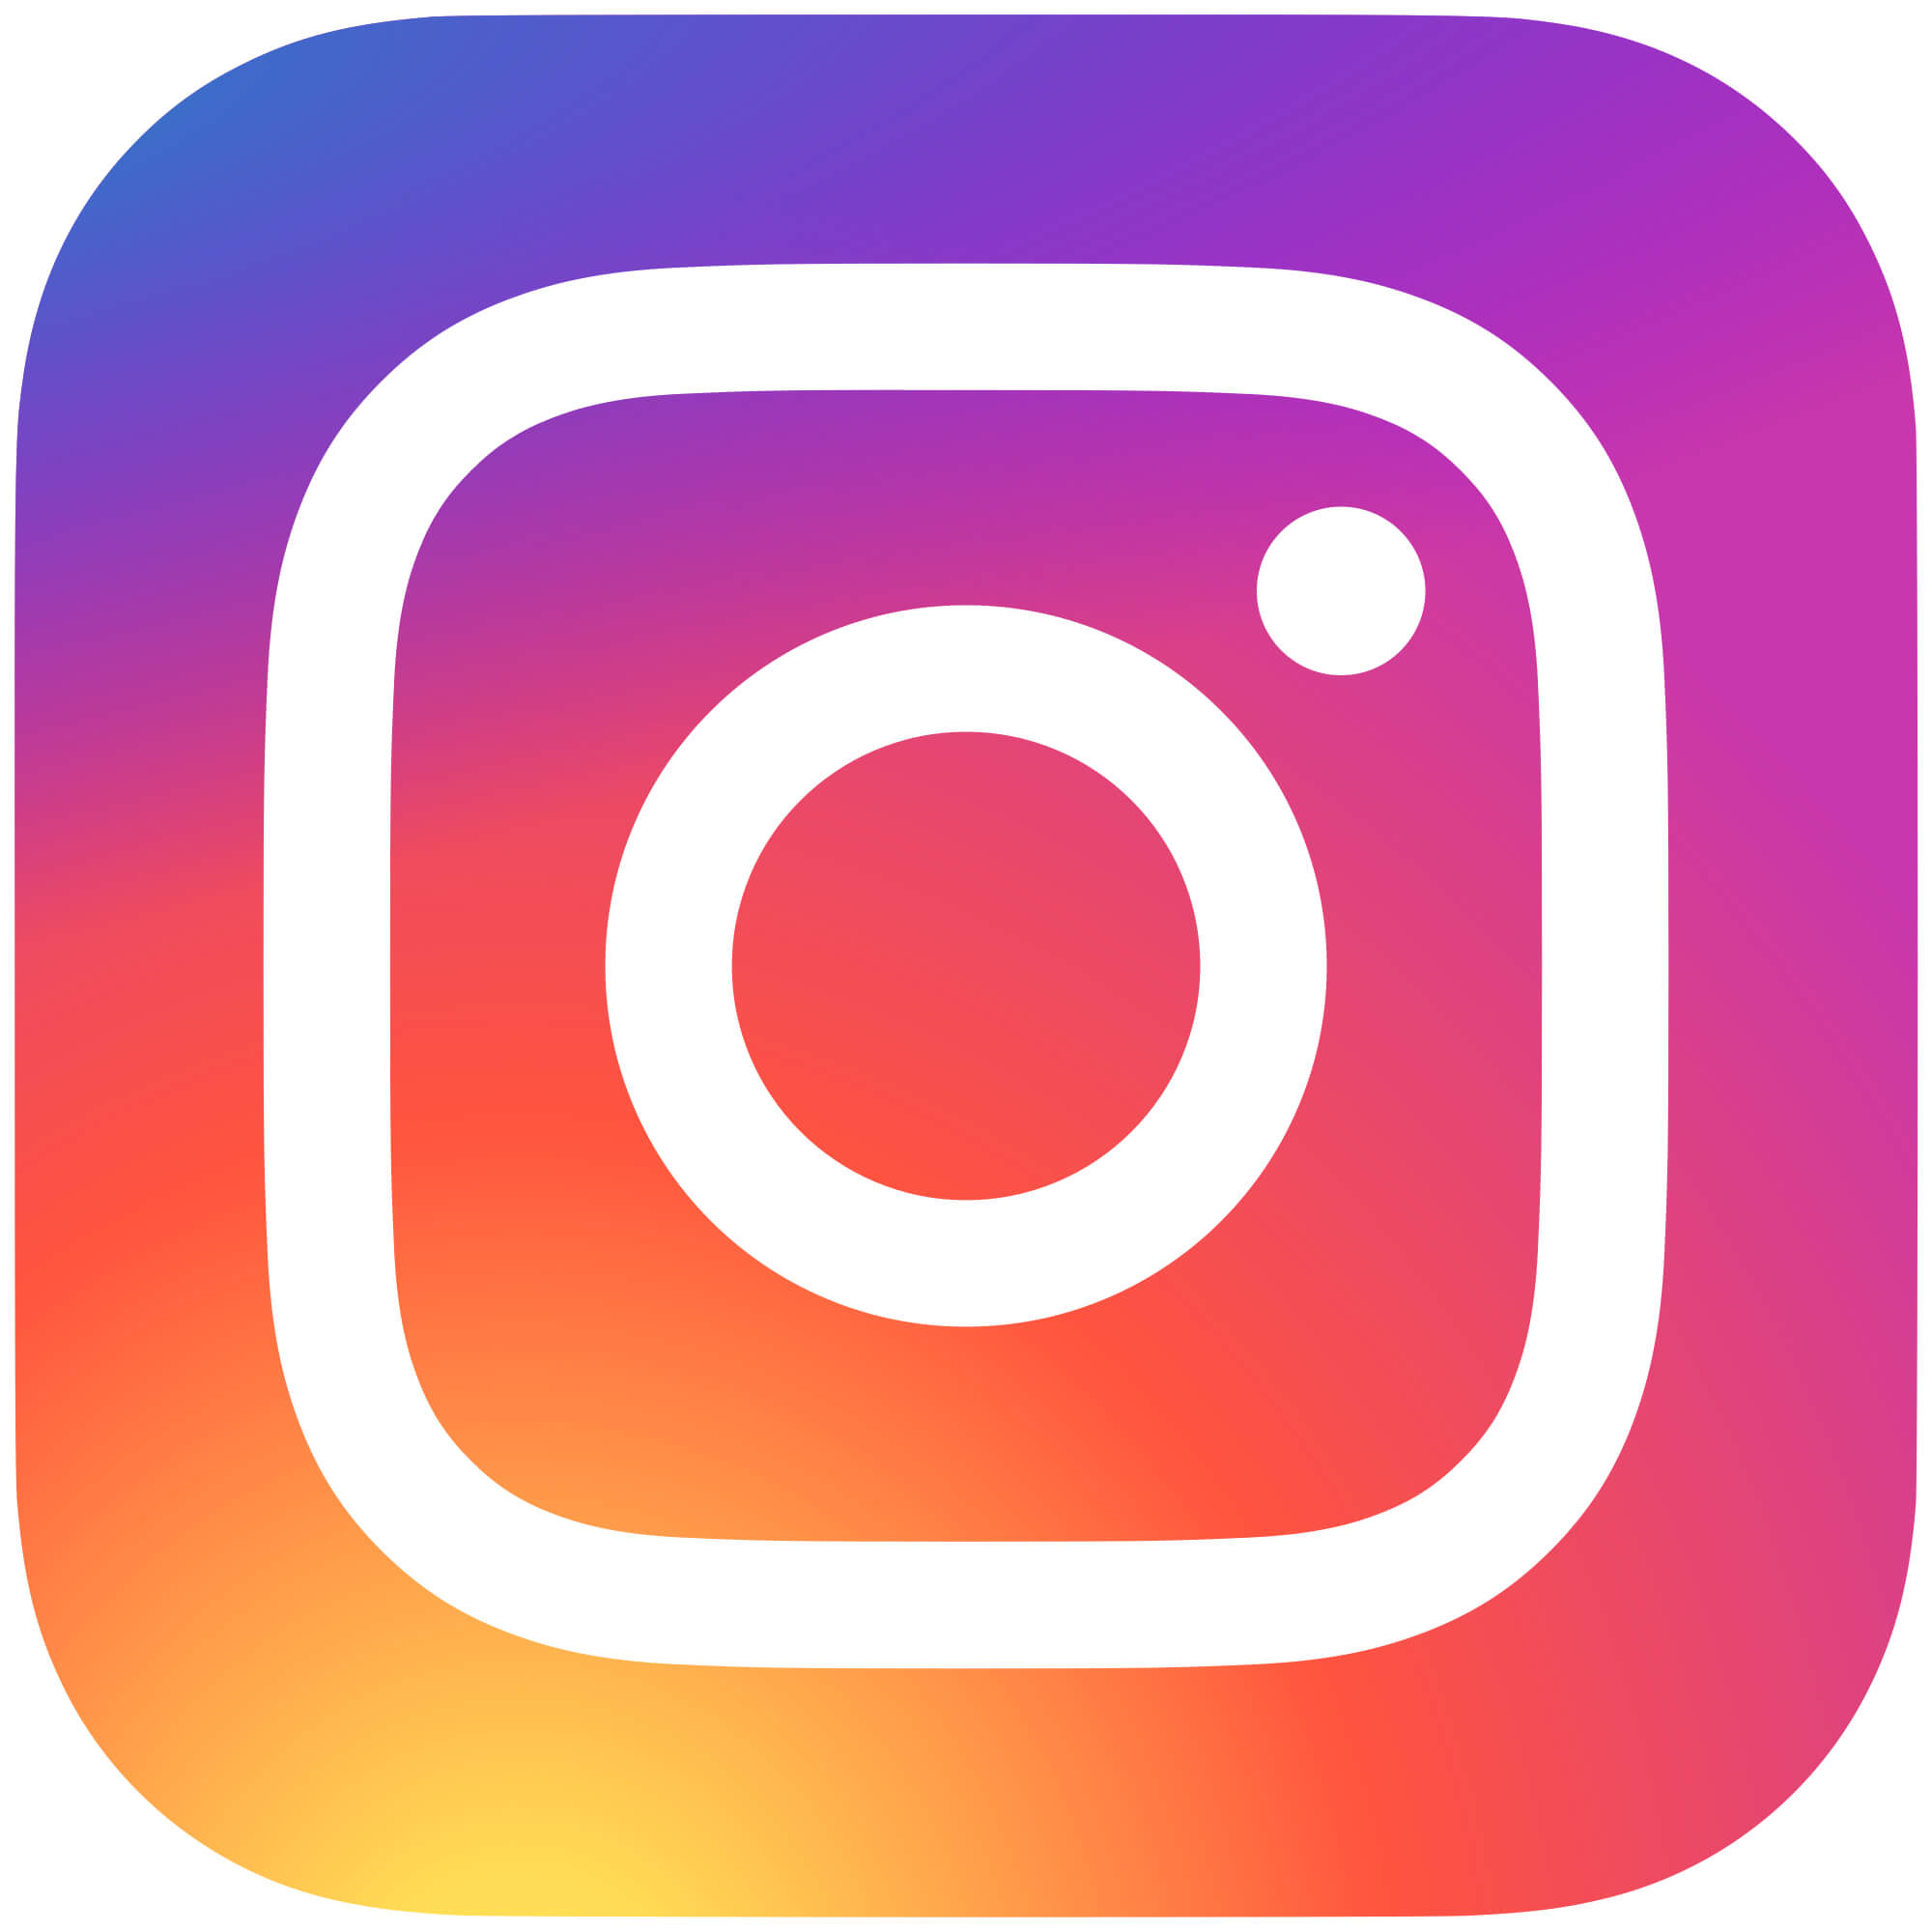 Follow Bartang on Instgram